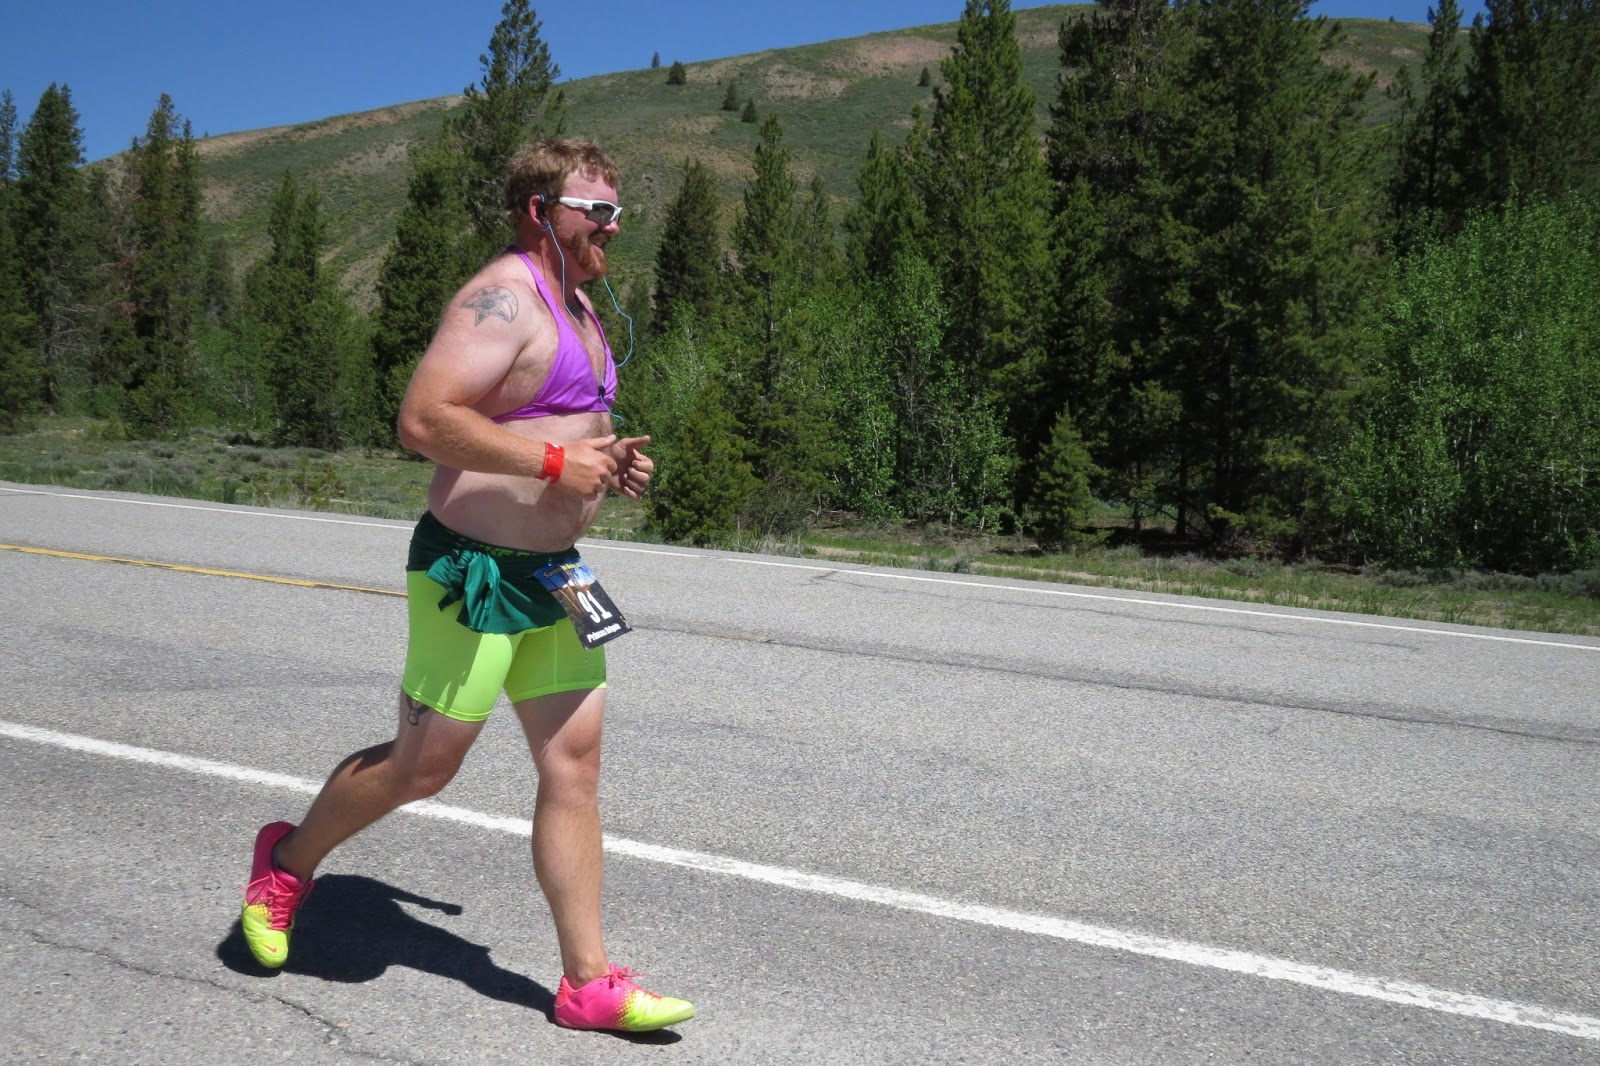 man running in a bikini